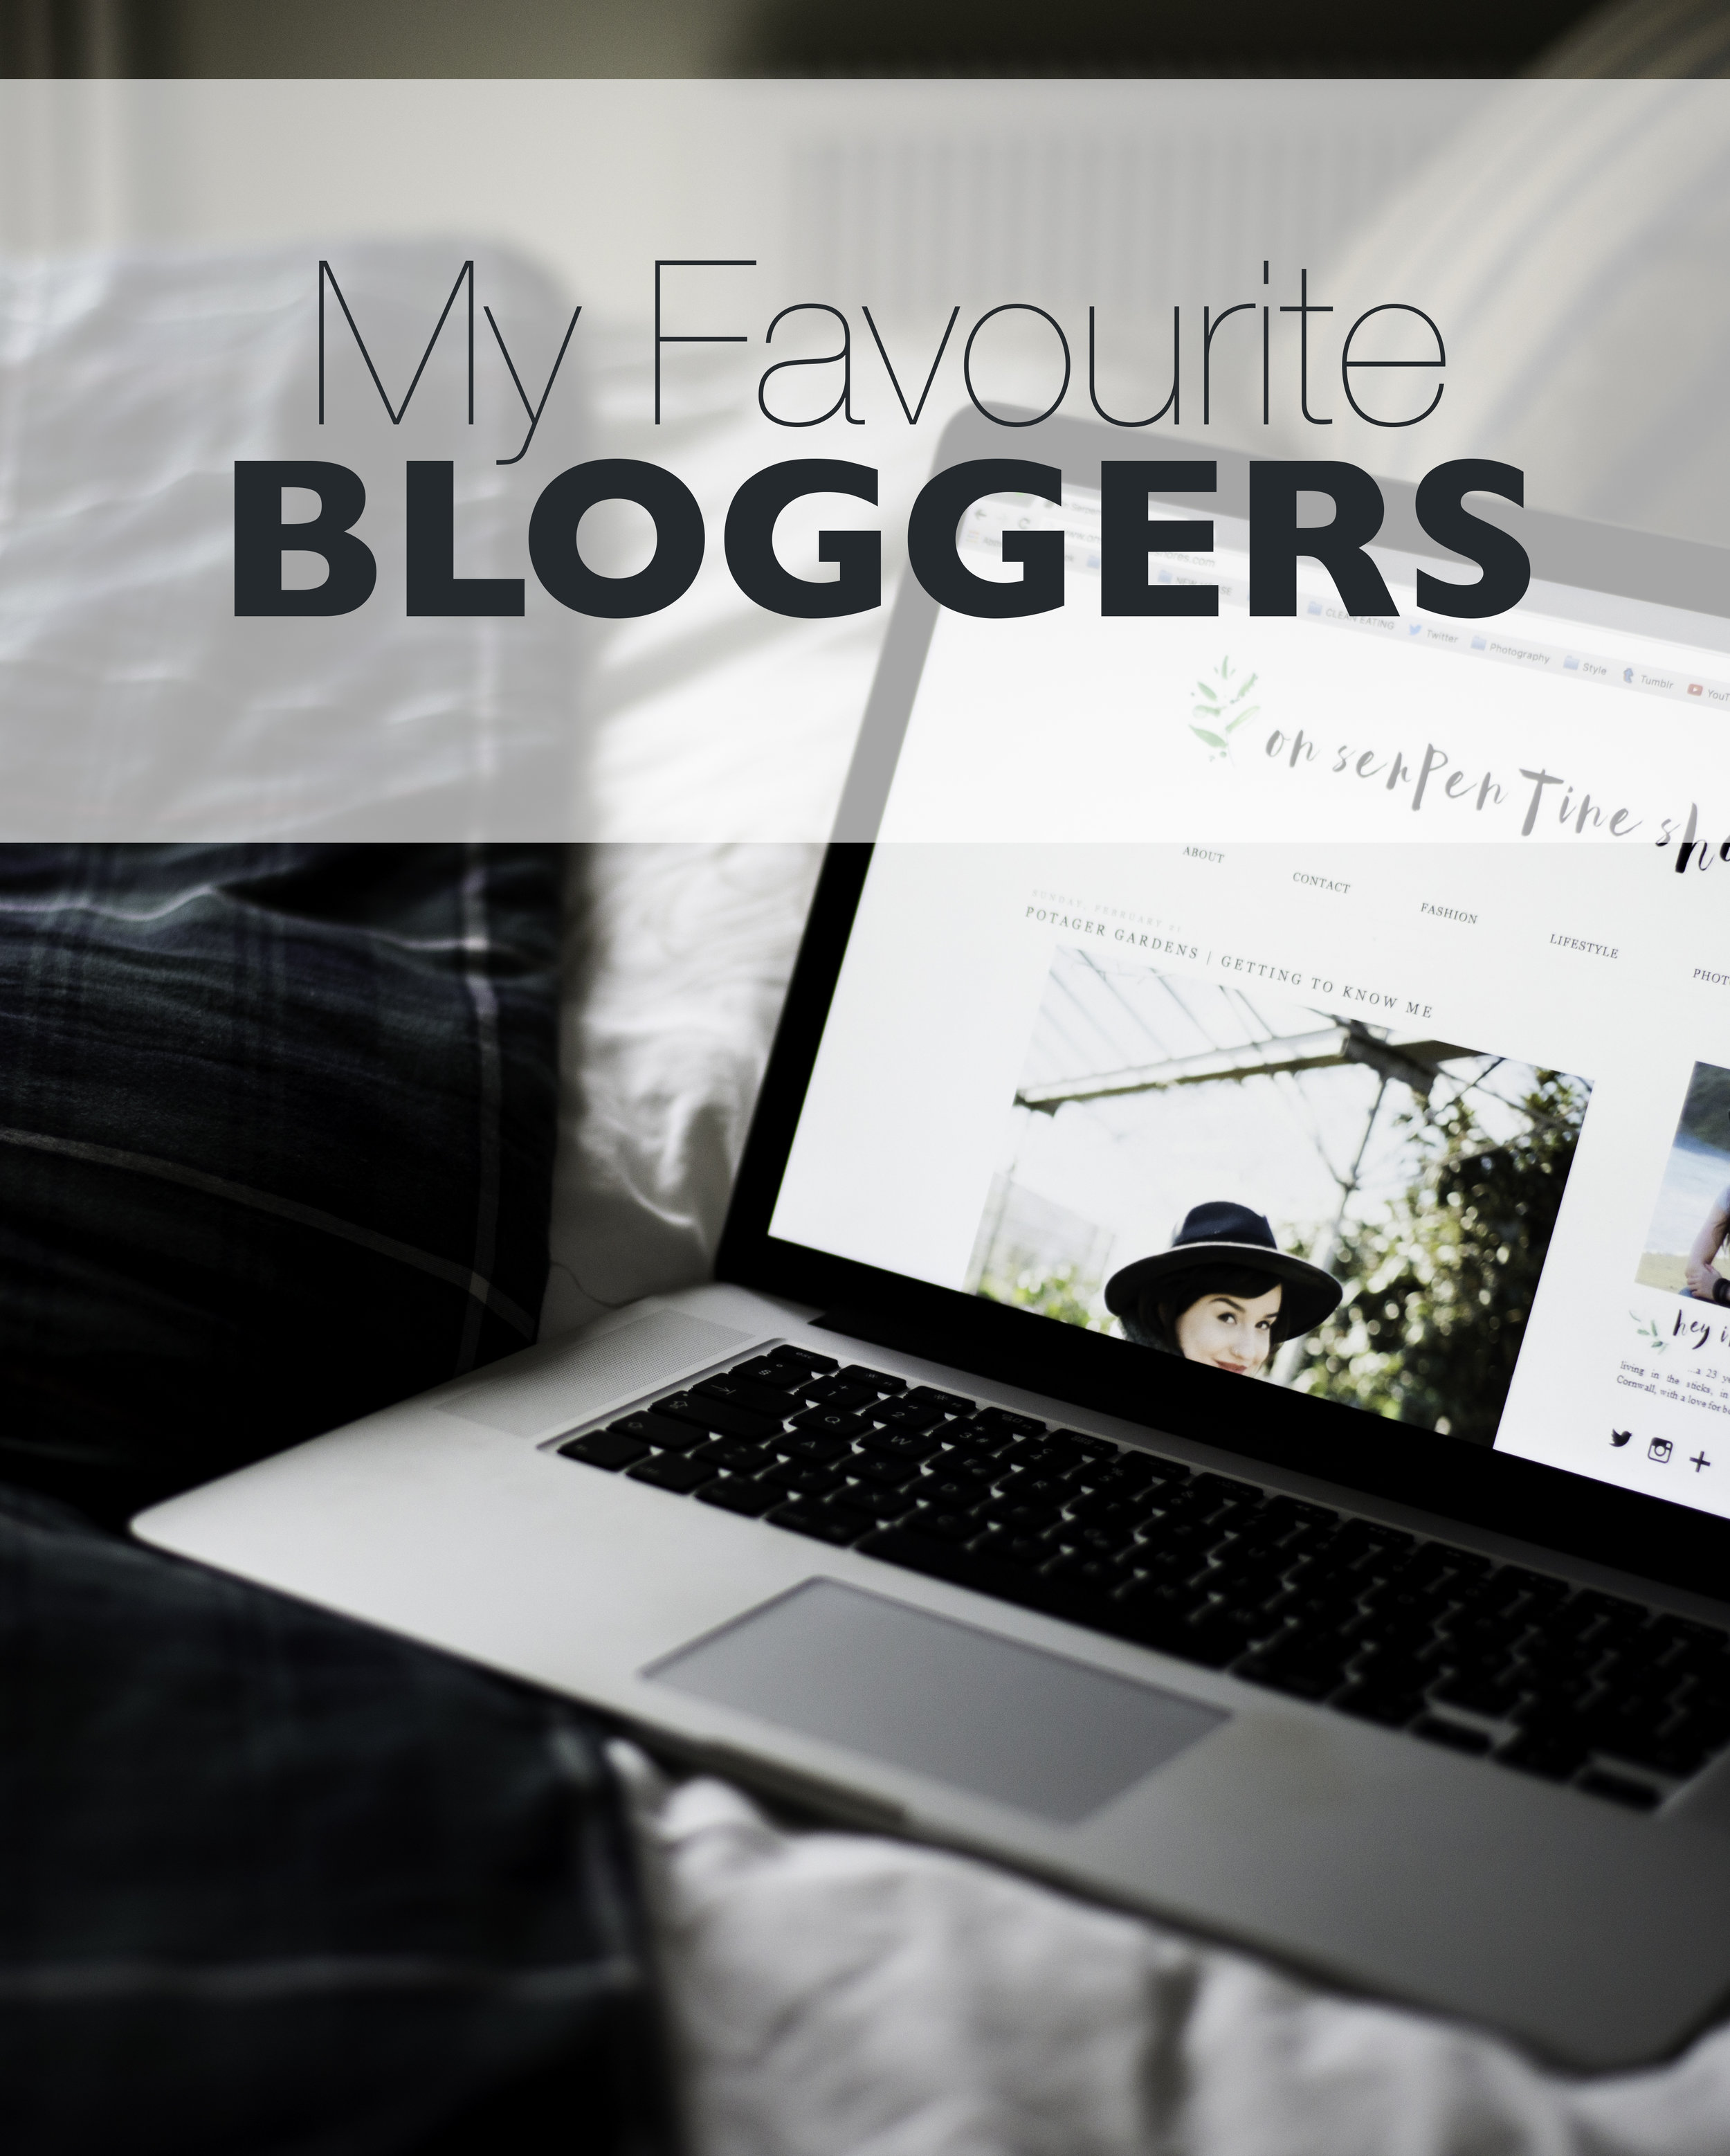 Favourite Bloggers by Olivia Bossert - oliviablogs.com